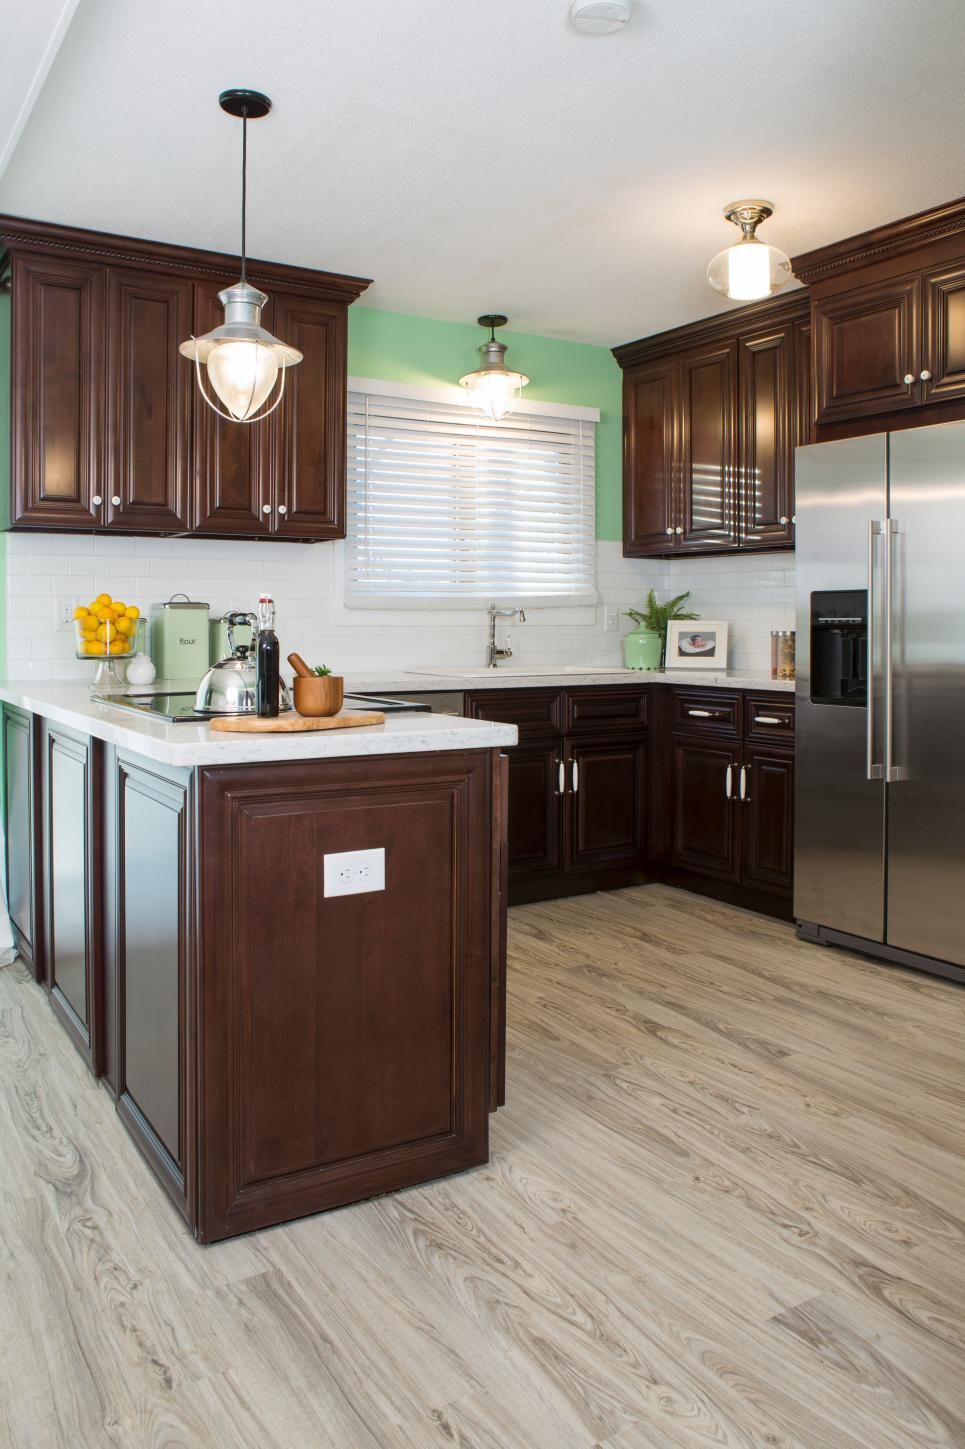 2019 Cherry Wood Cabinets Beauty And Durability For Every Kitchen Cherry Wood Kitchen Cabinets Cherry Cabinets Kitchen Cherry Wood Kitchens